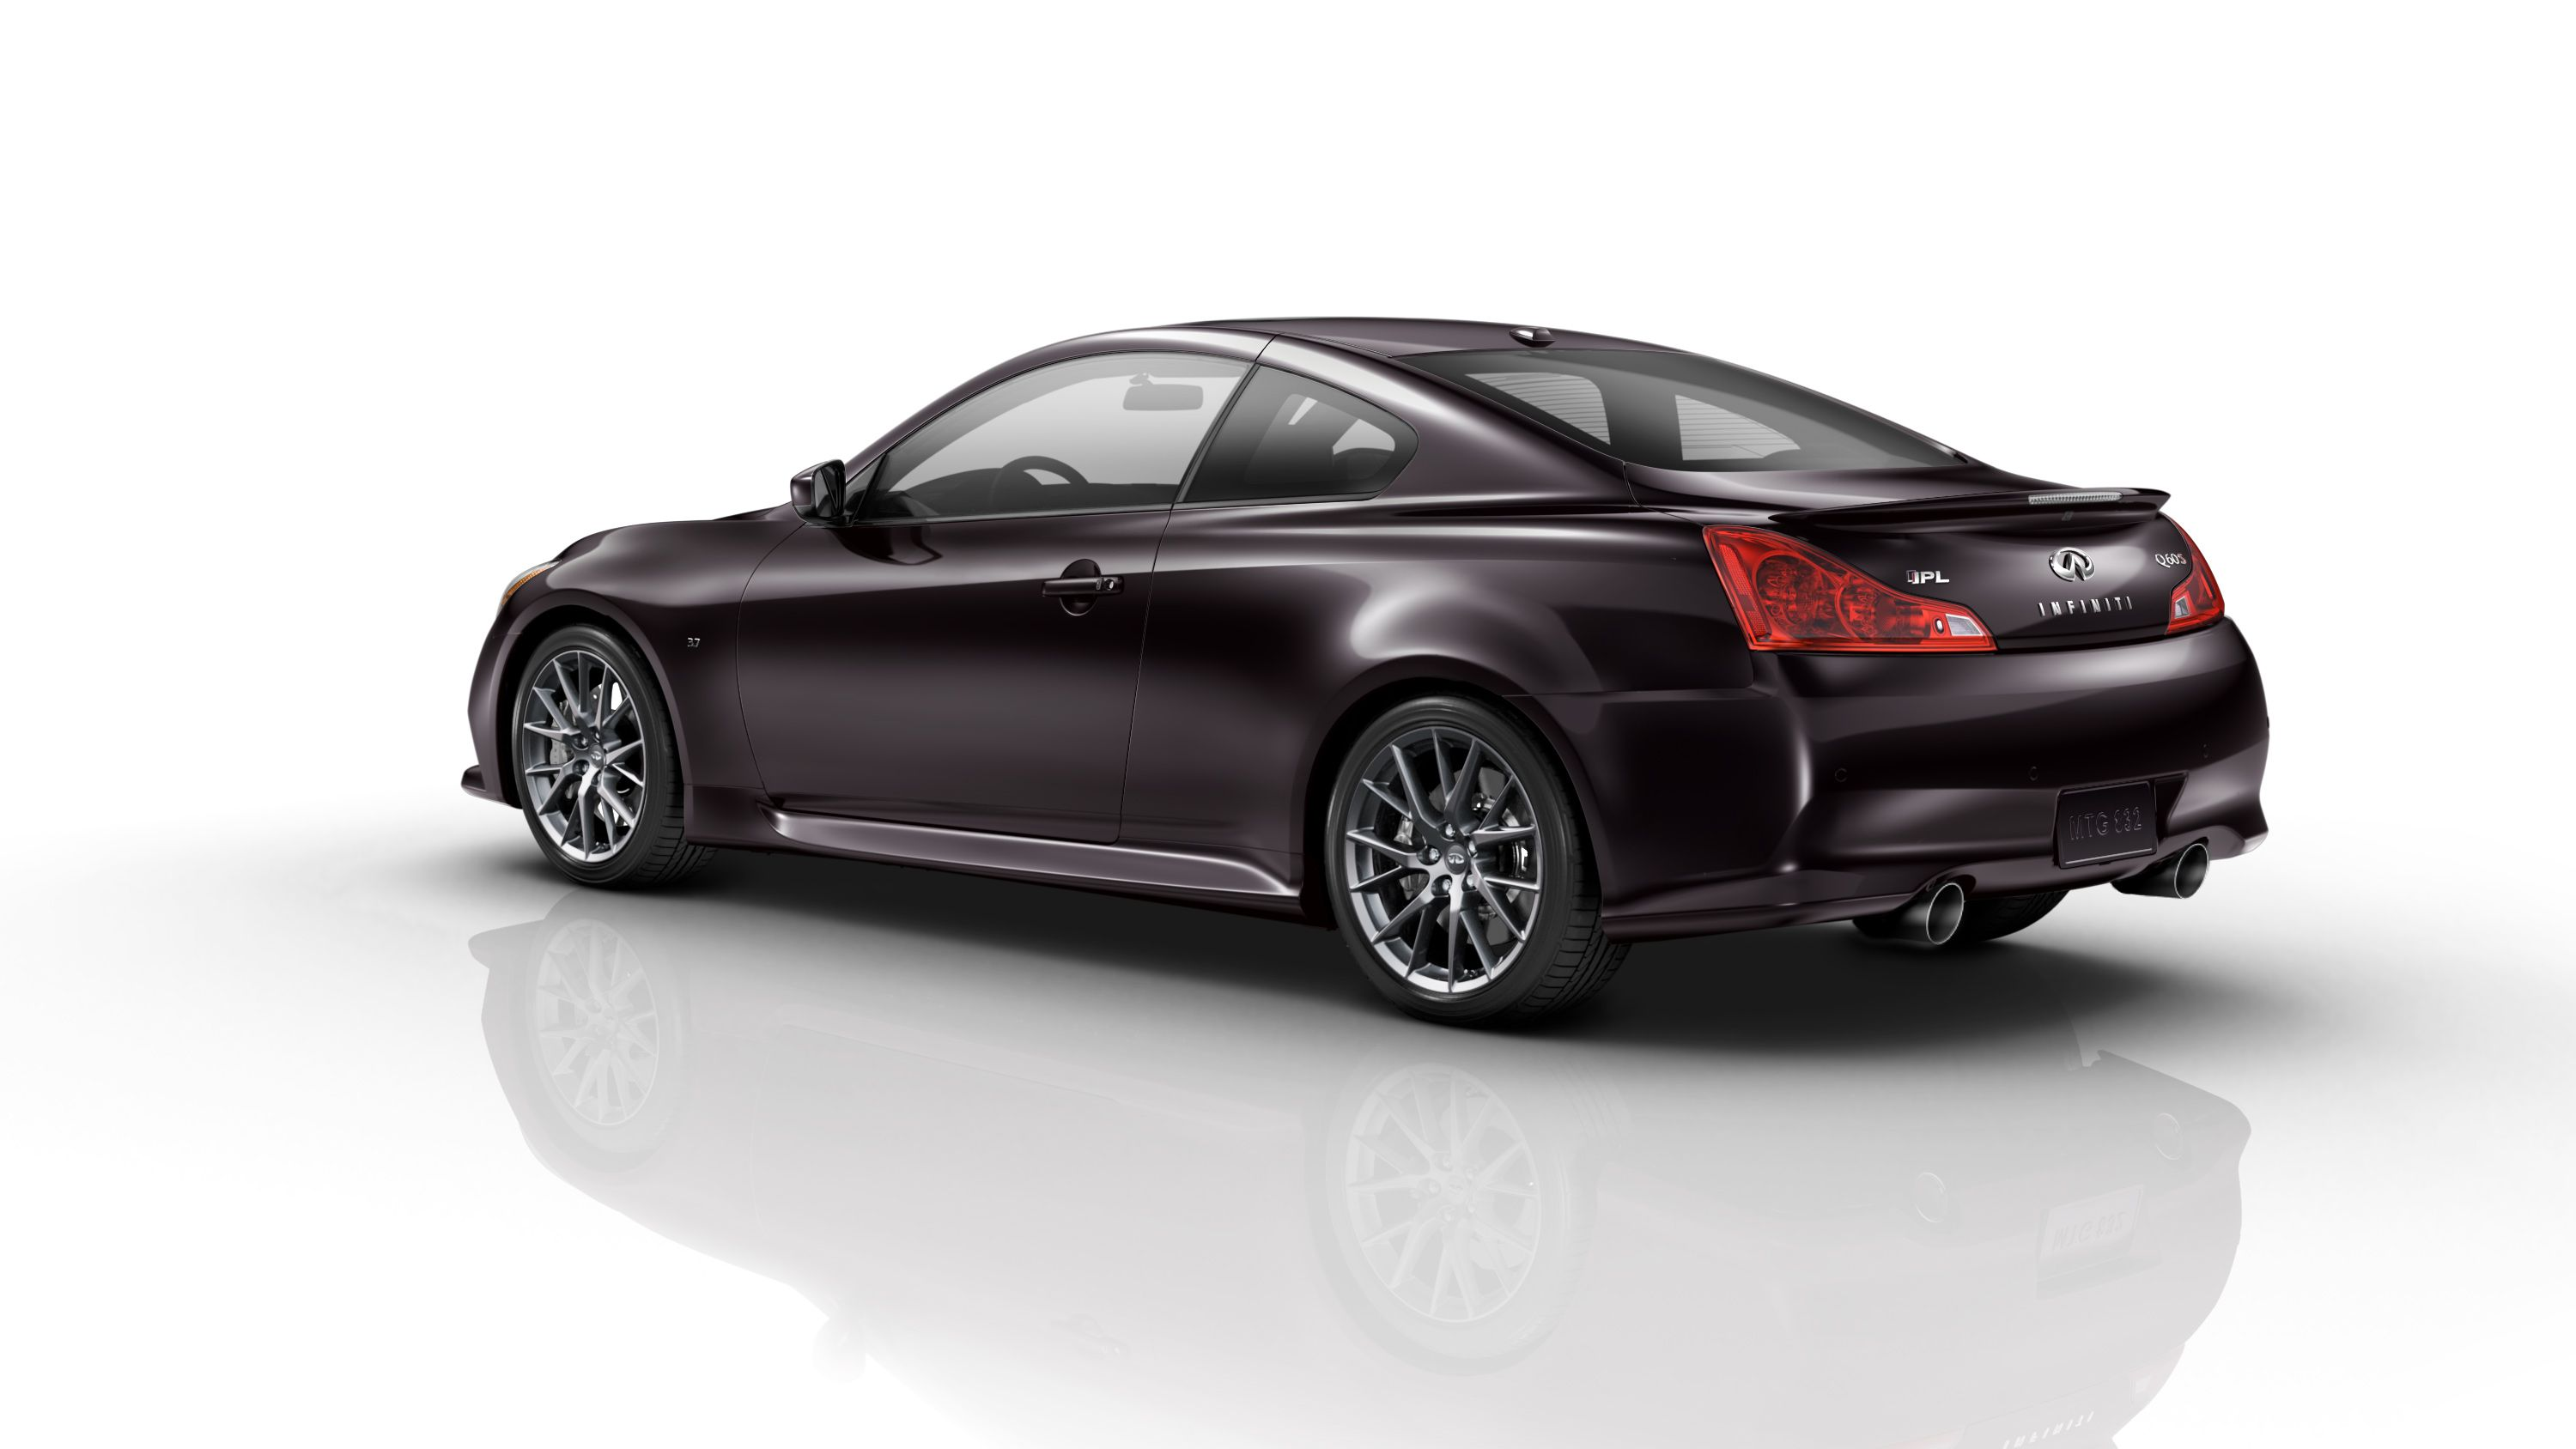 2015 infiniti q60 sedan and coupe infiniti pinterest sedans 2015 infiniti q60 sedan and coupe infiniti pinterest sedans and coupe vanachro Image collections